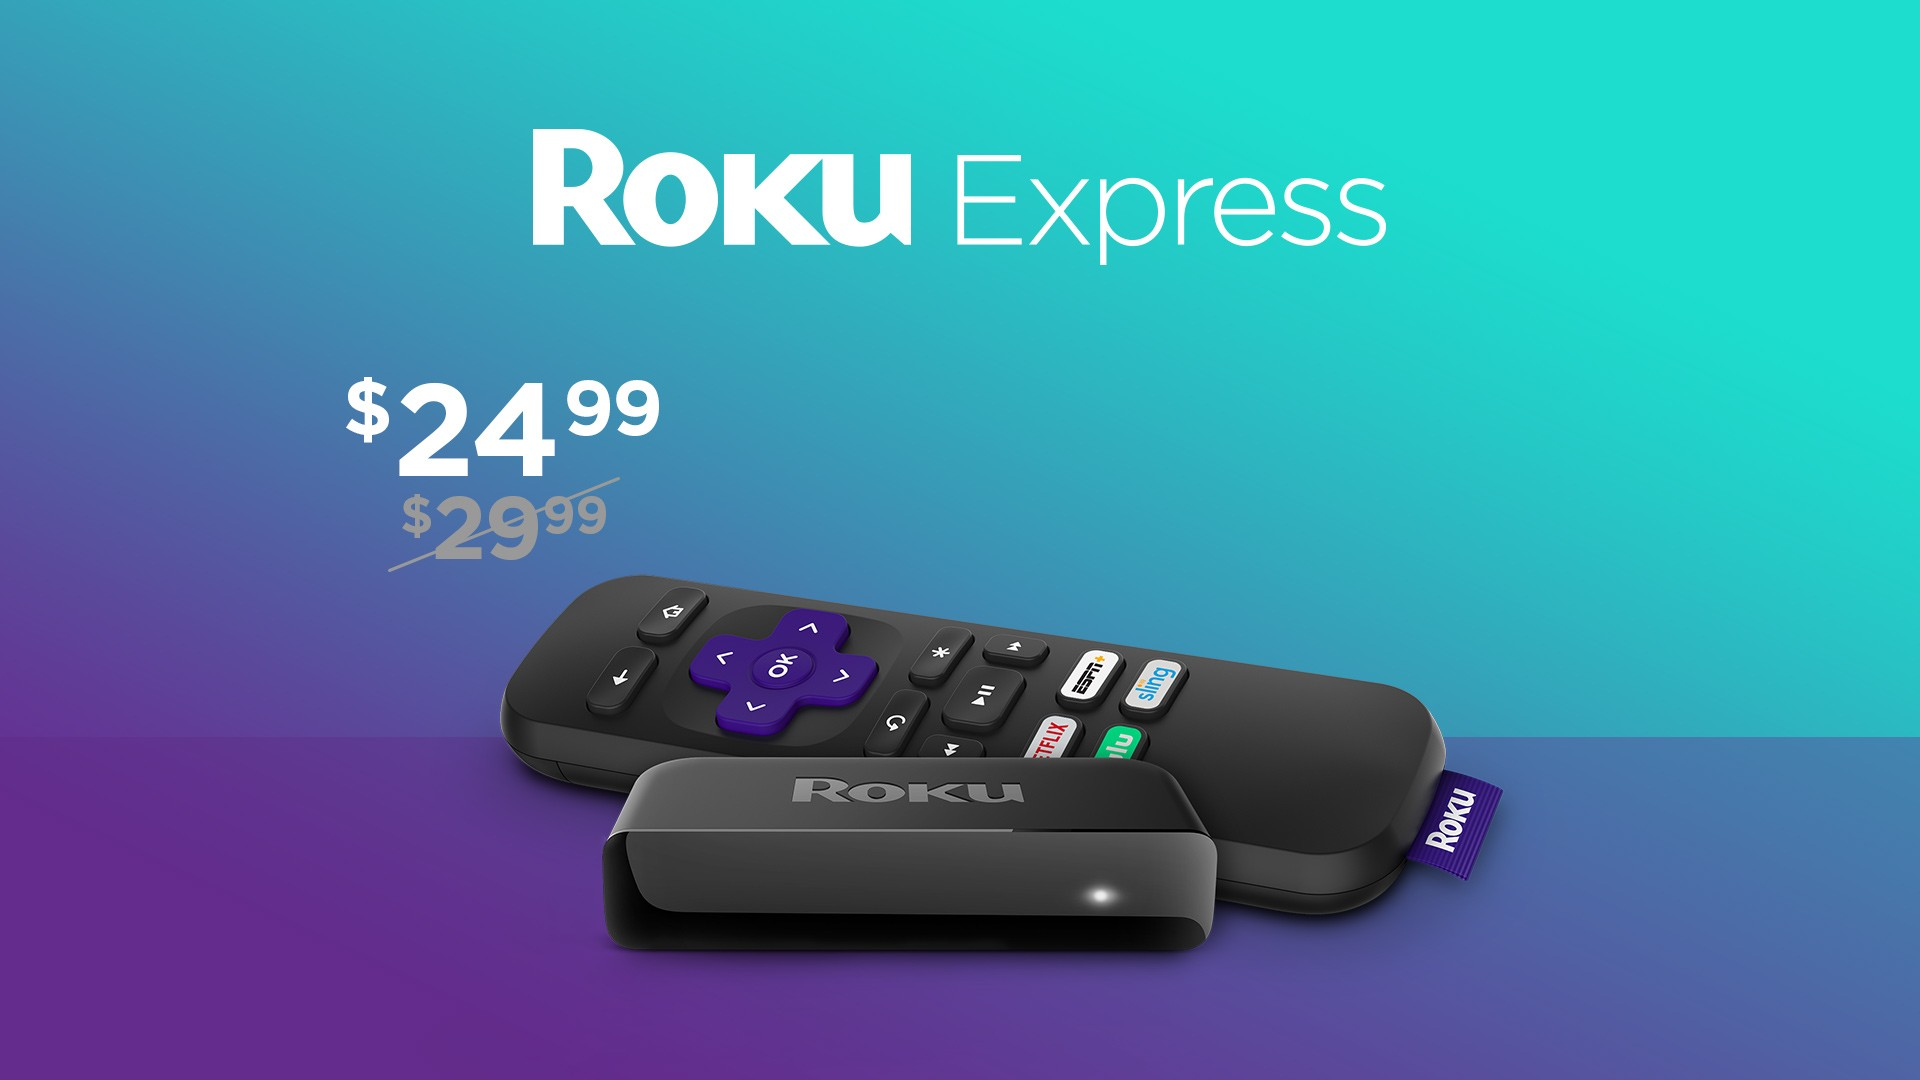 Save $5 on the Roku Express